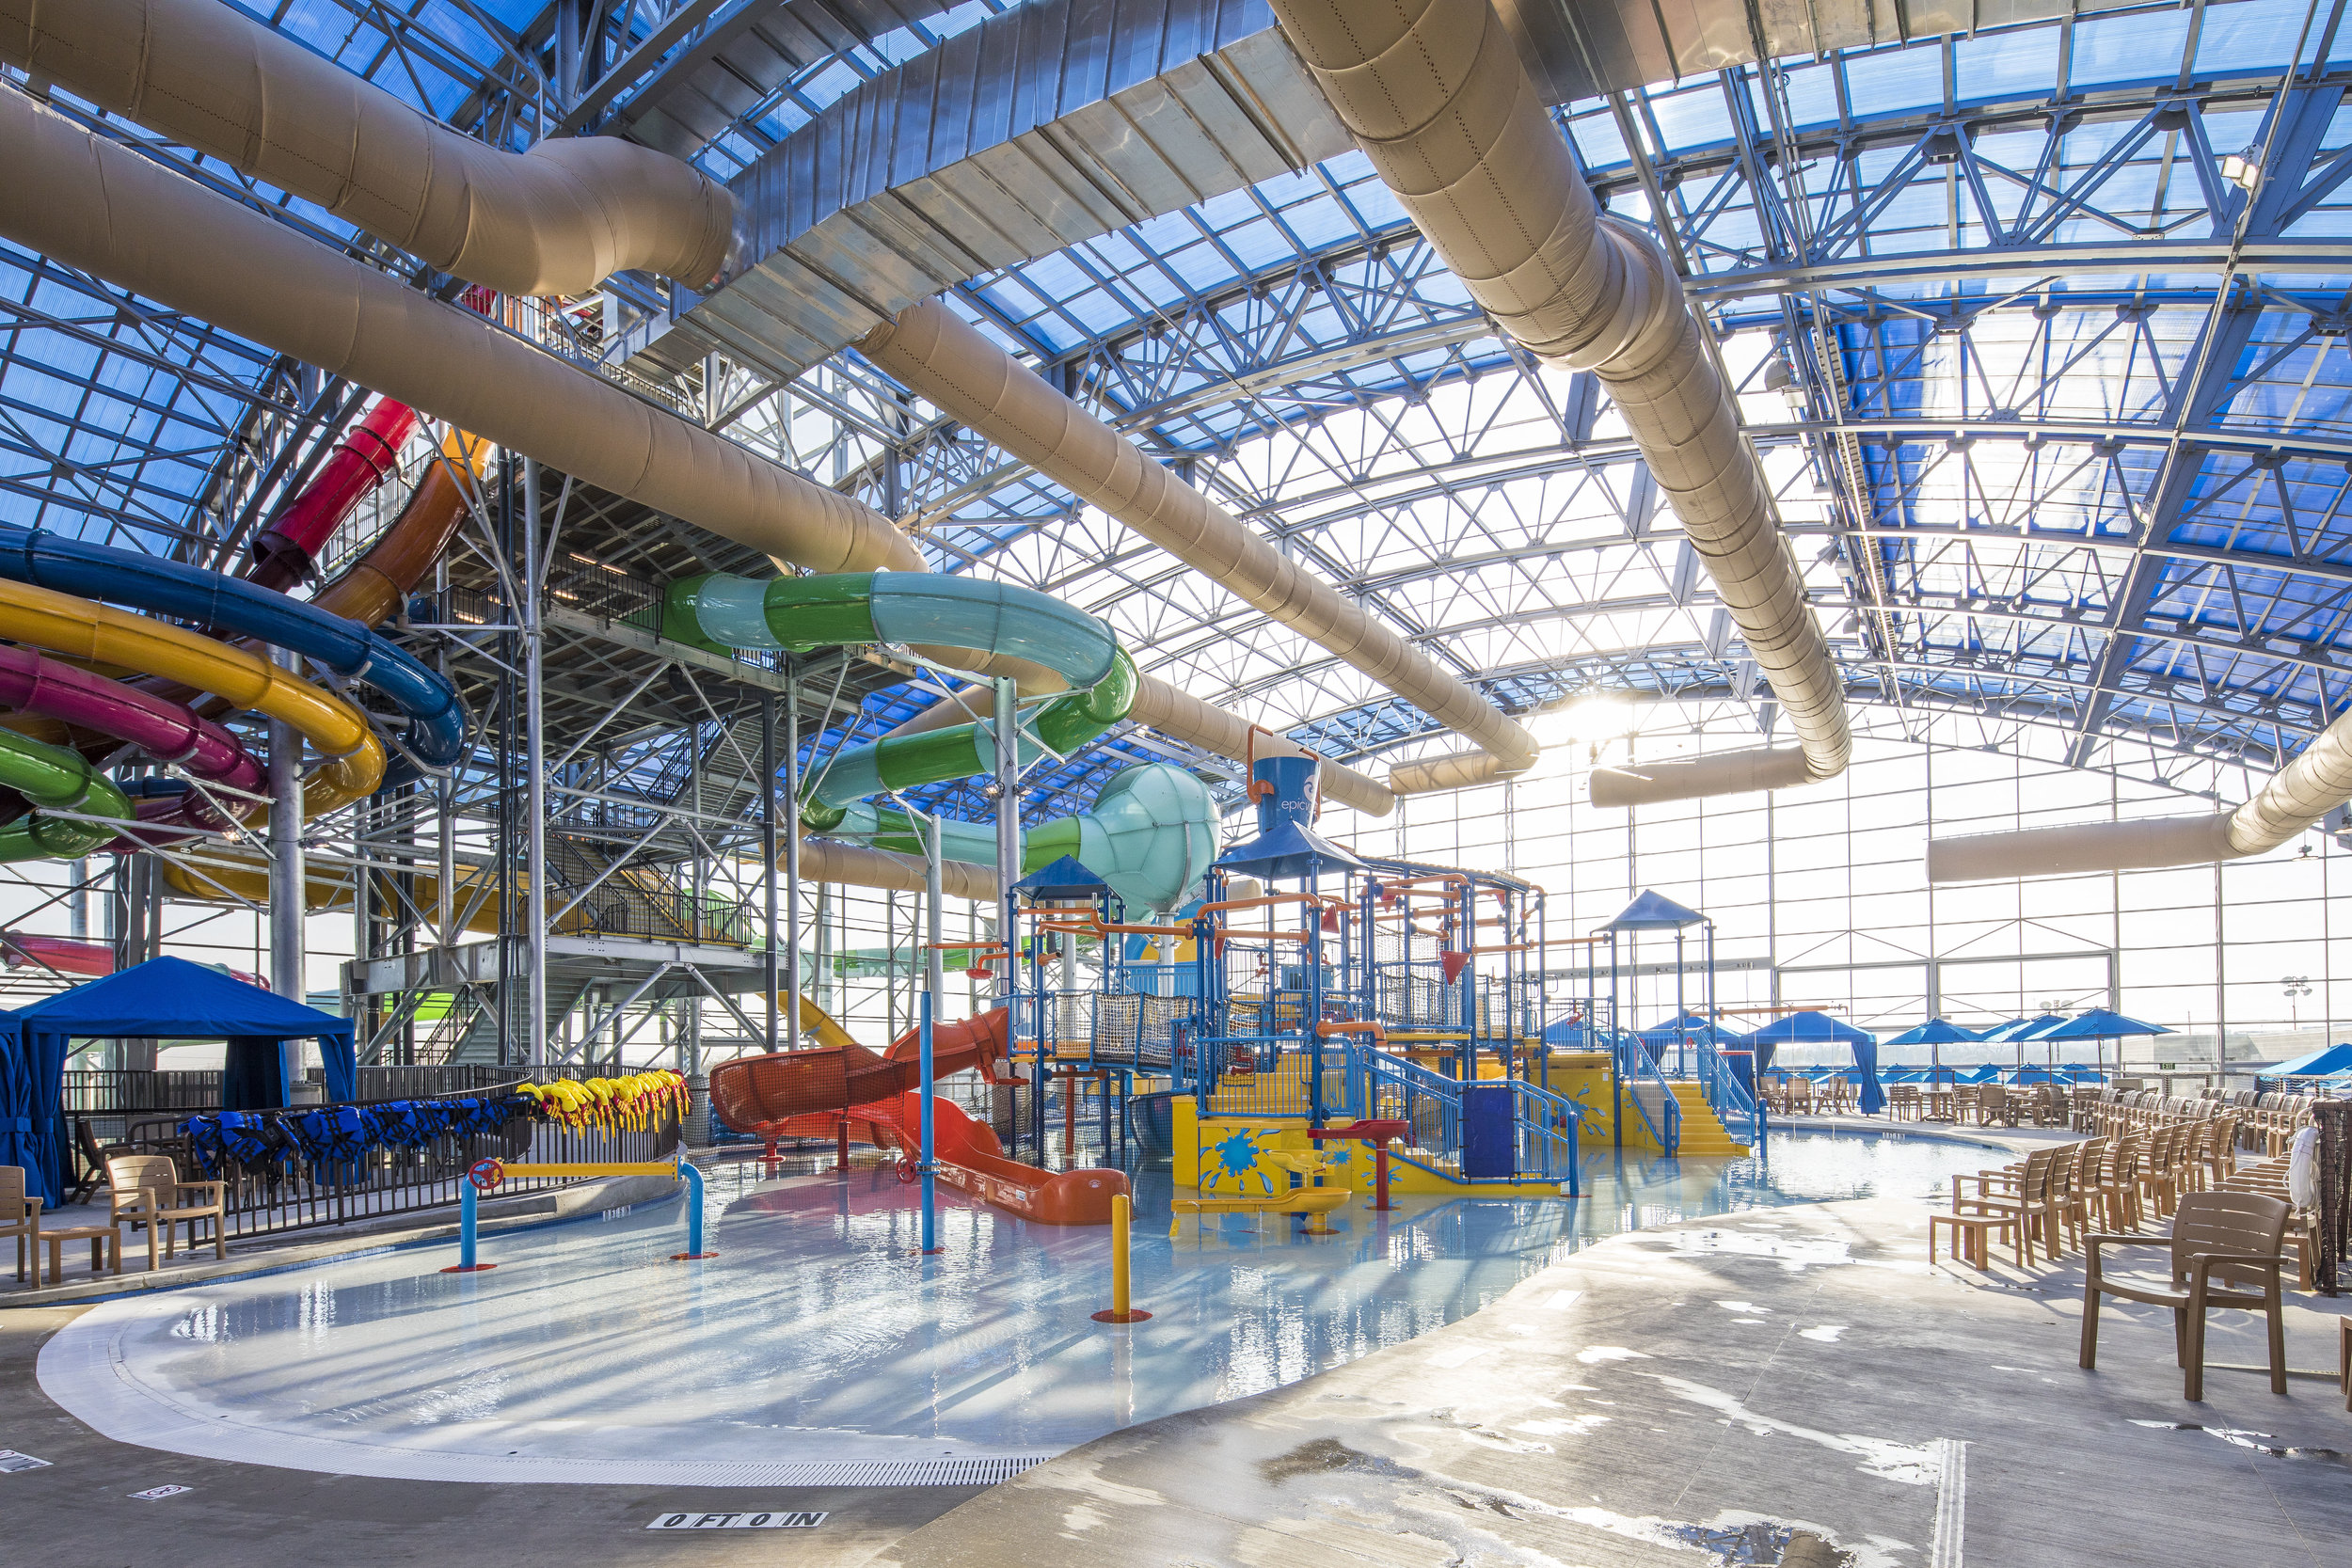 interior view of slides at Epic Waters